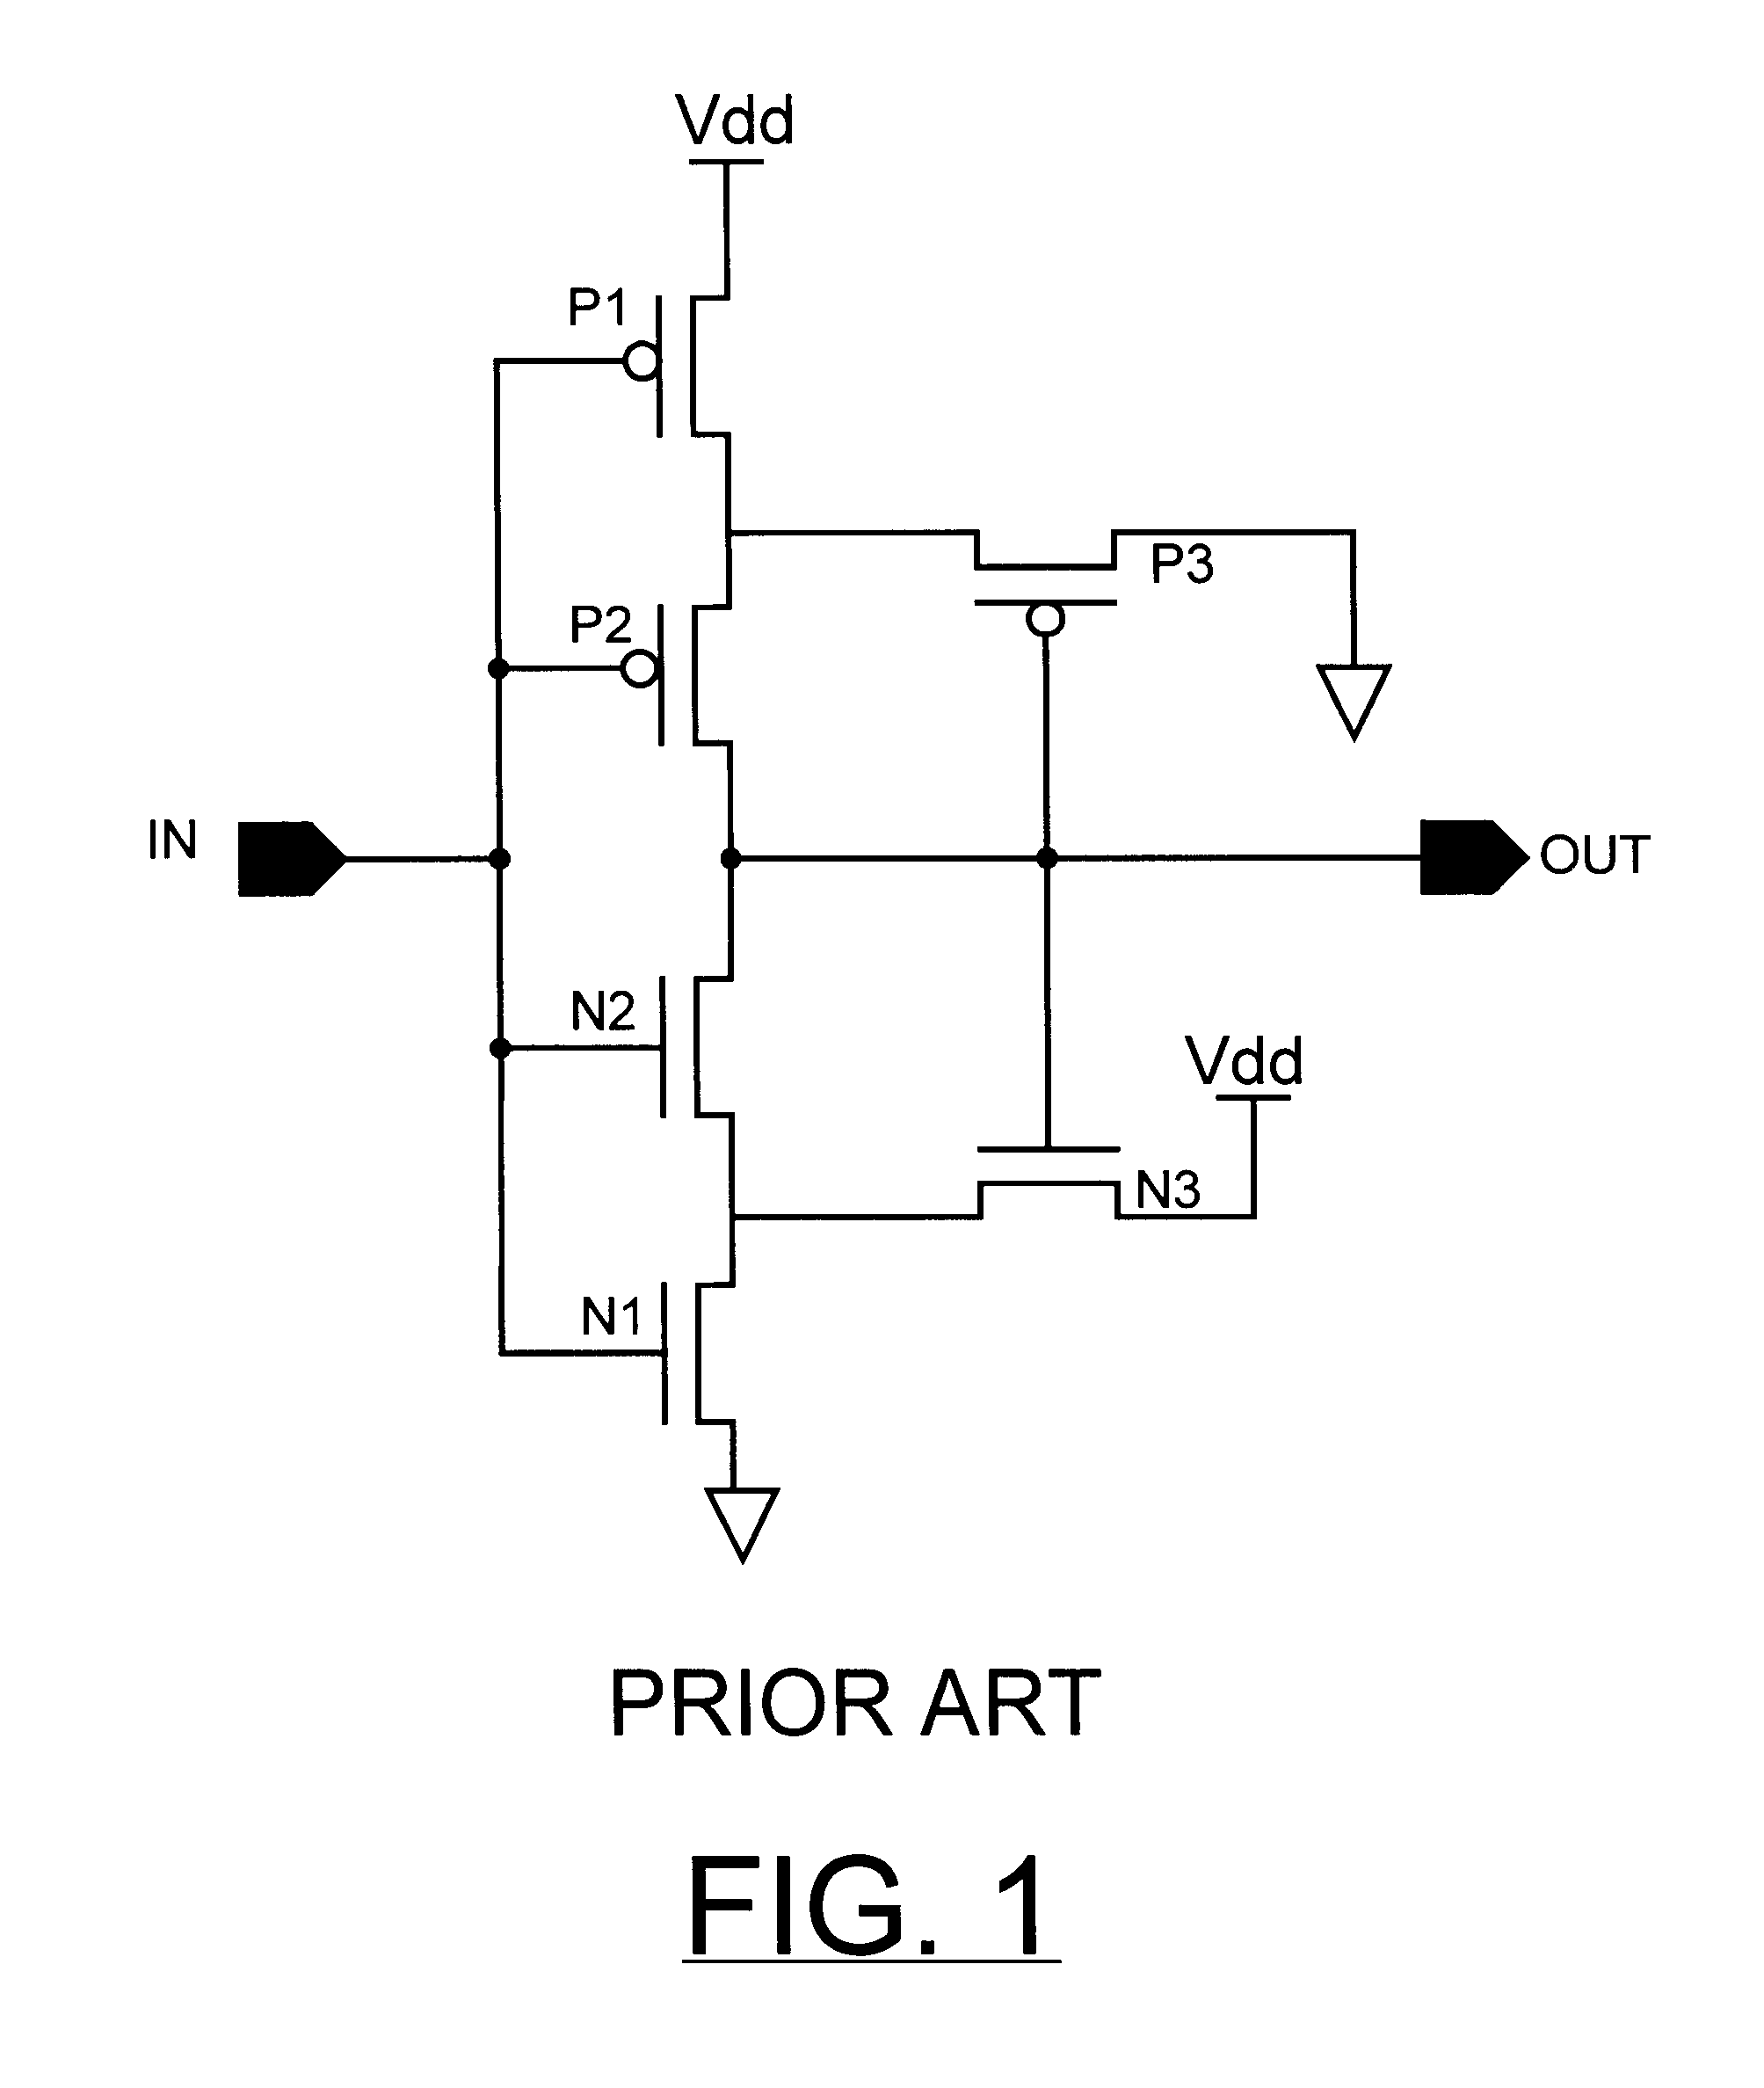 Fet Schmitt Trigger Circuit Best Electrical Wiring Diagram Lm393lm339comparator Oscillator Circuitcomparator Patente Us6441663 Soi Cmos Circuits With Inverting